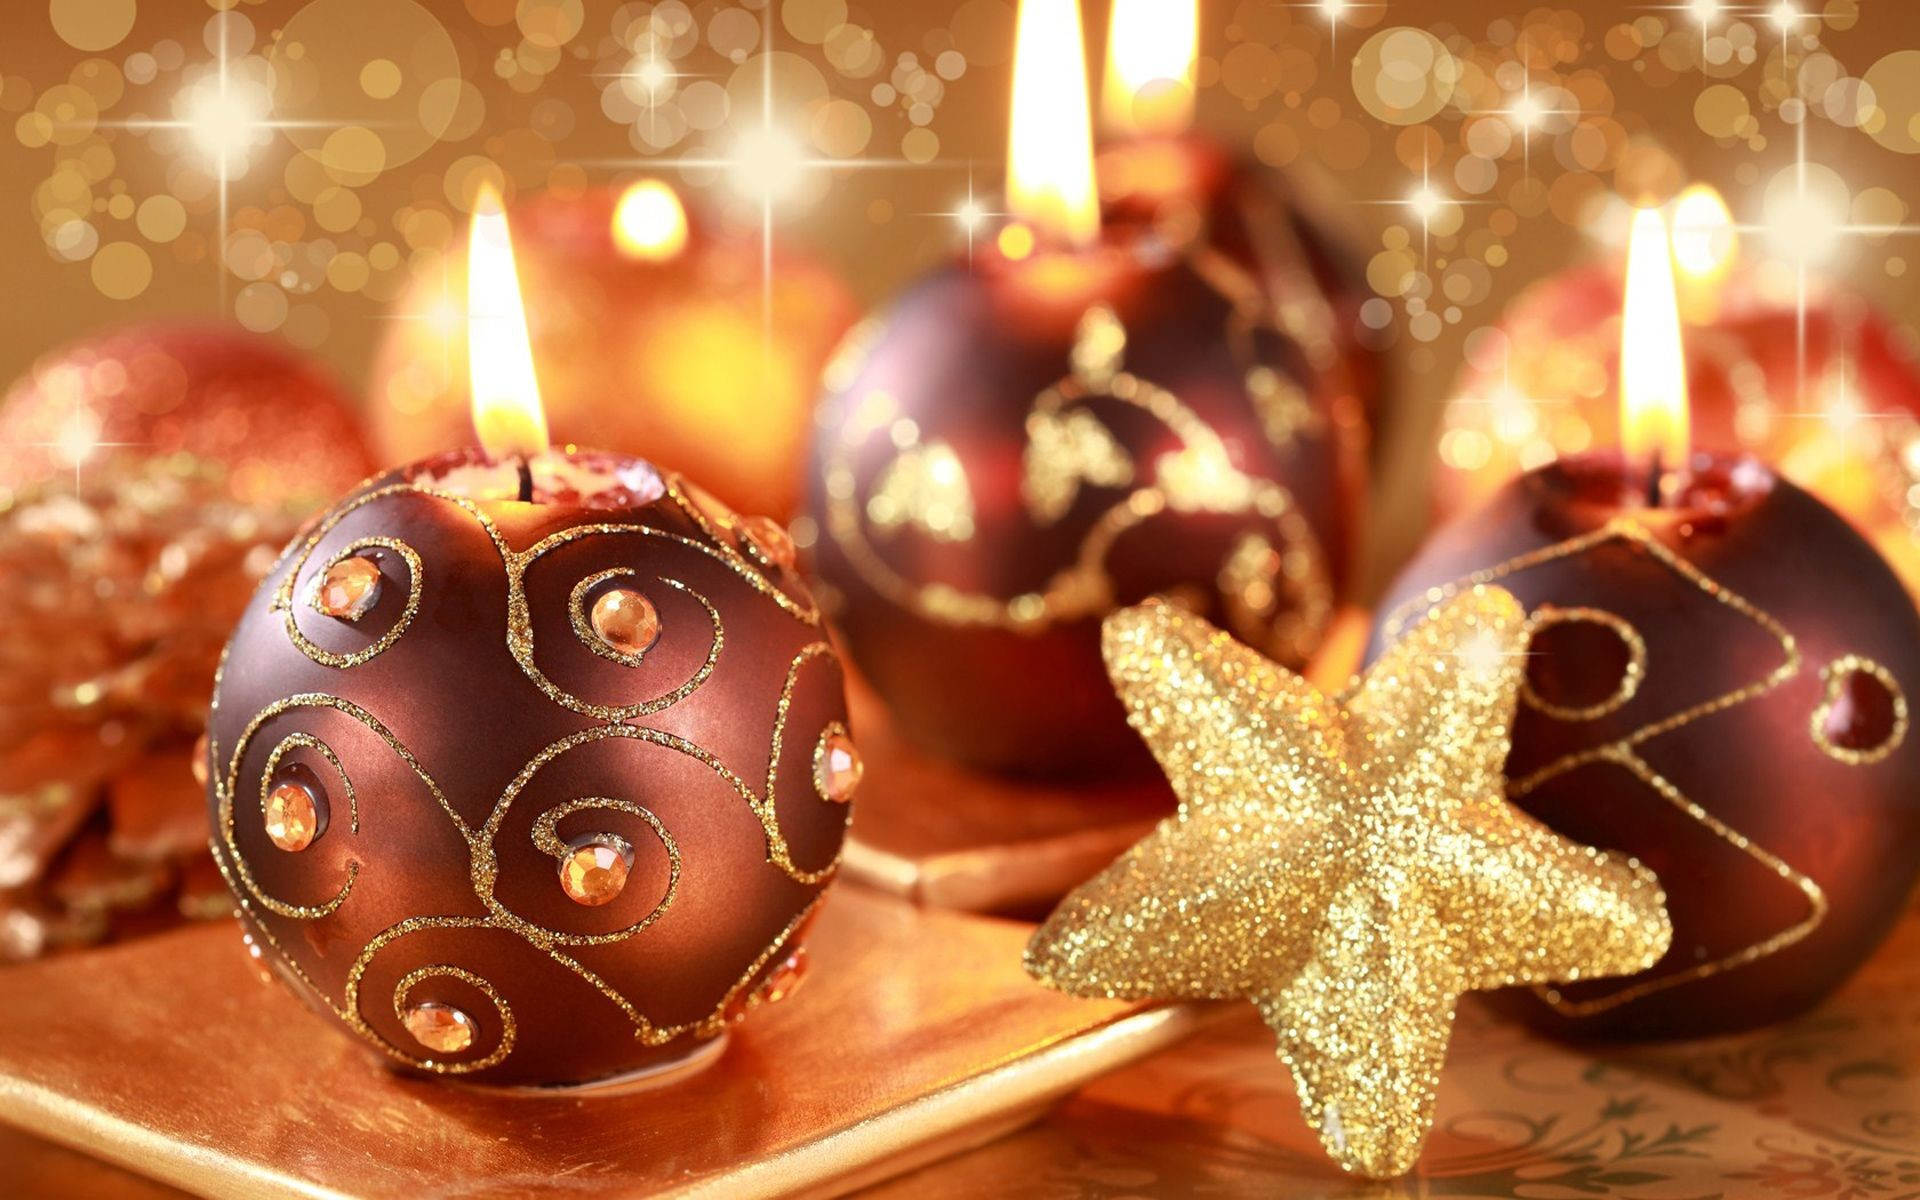 1920x1200 Christmas Candle Wallpapers - Wallpaper Cave